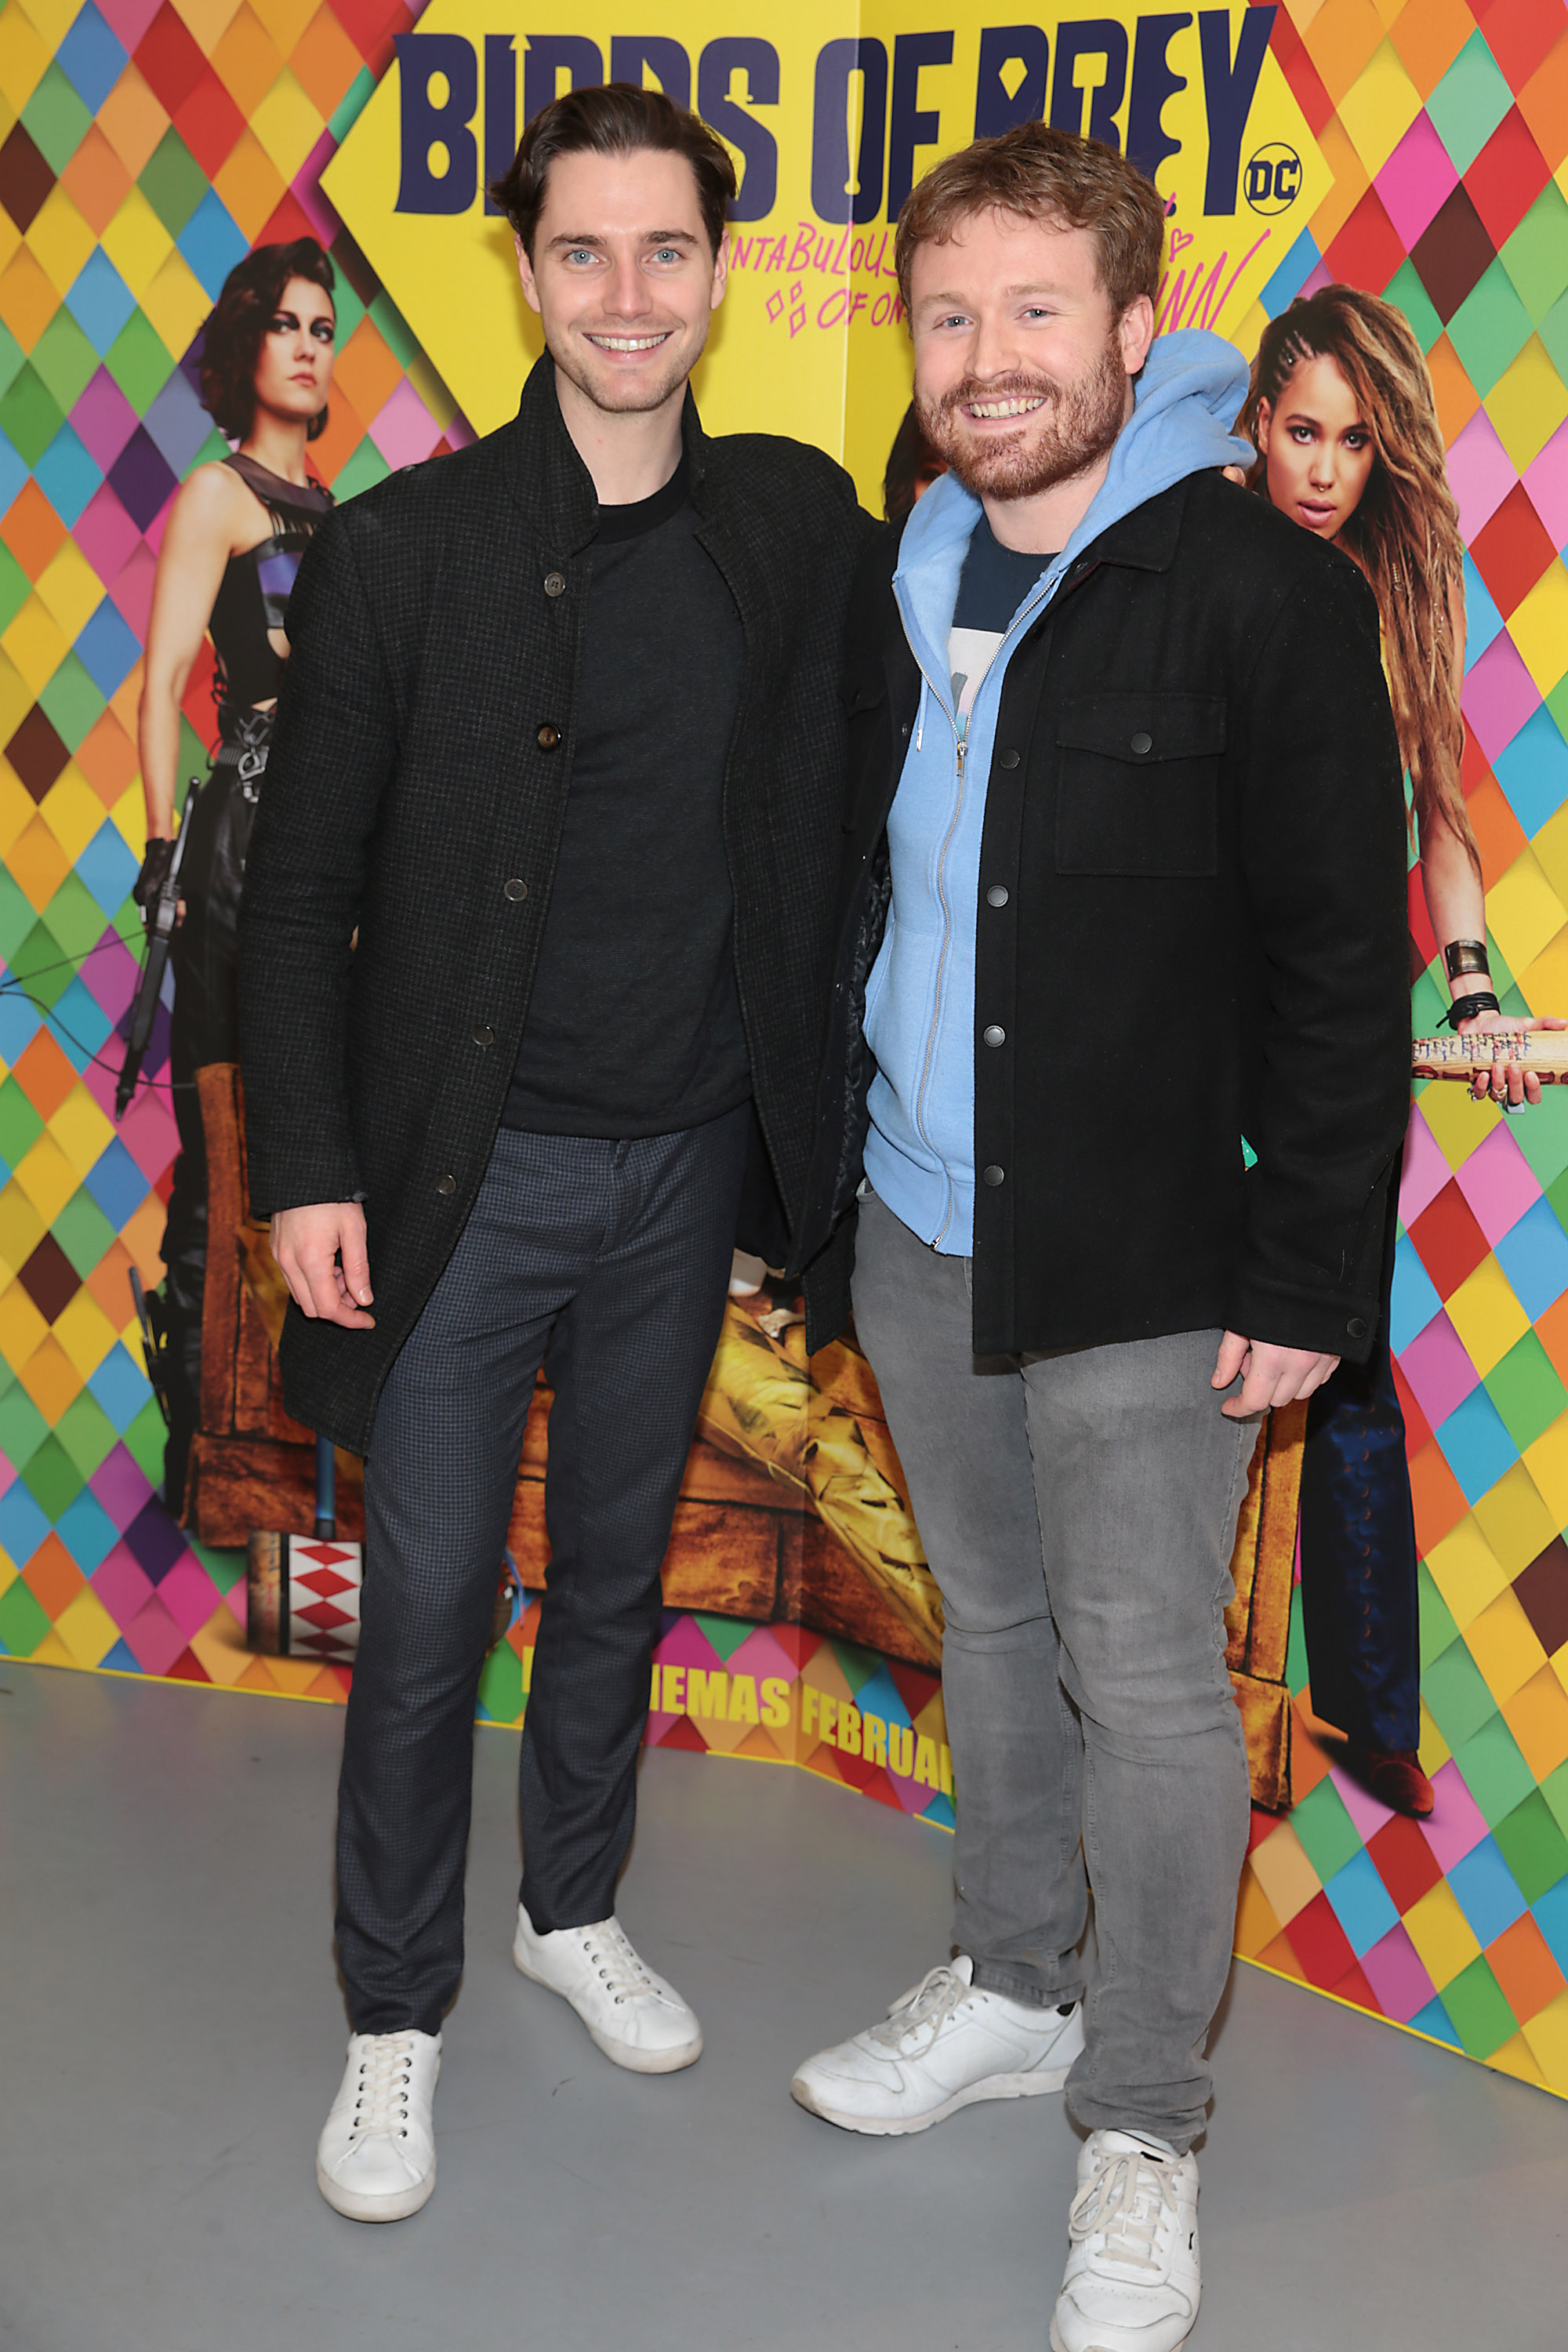 Barry Donohue and Kieran Bell at the special preview screening of Birds of Prey at the Lighthouse Cinema, Dublin. Pic: Brian McEvoy